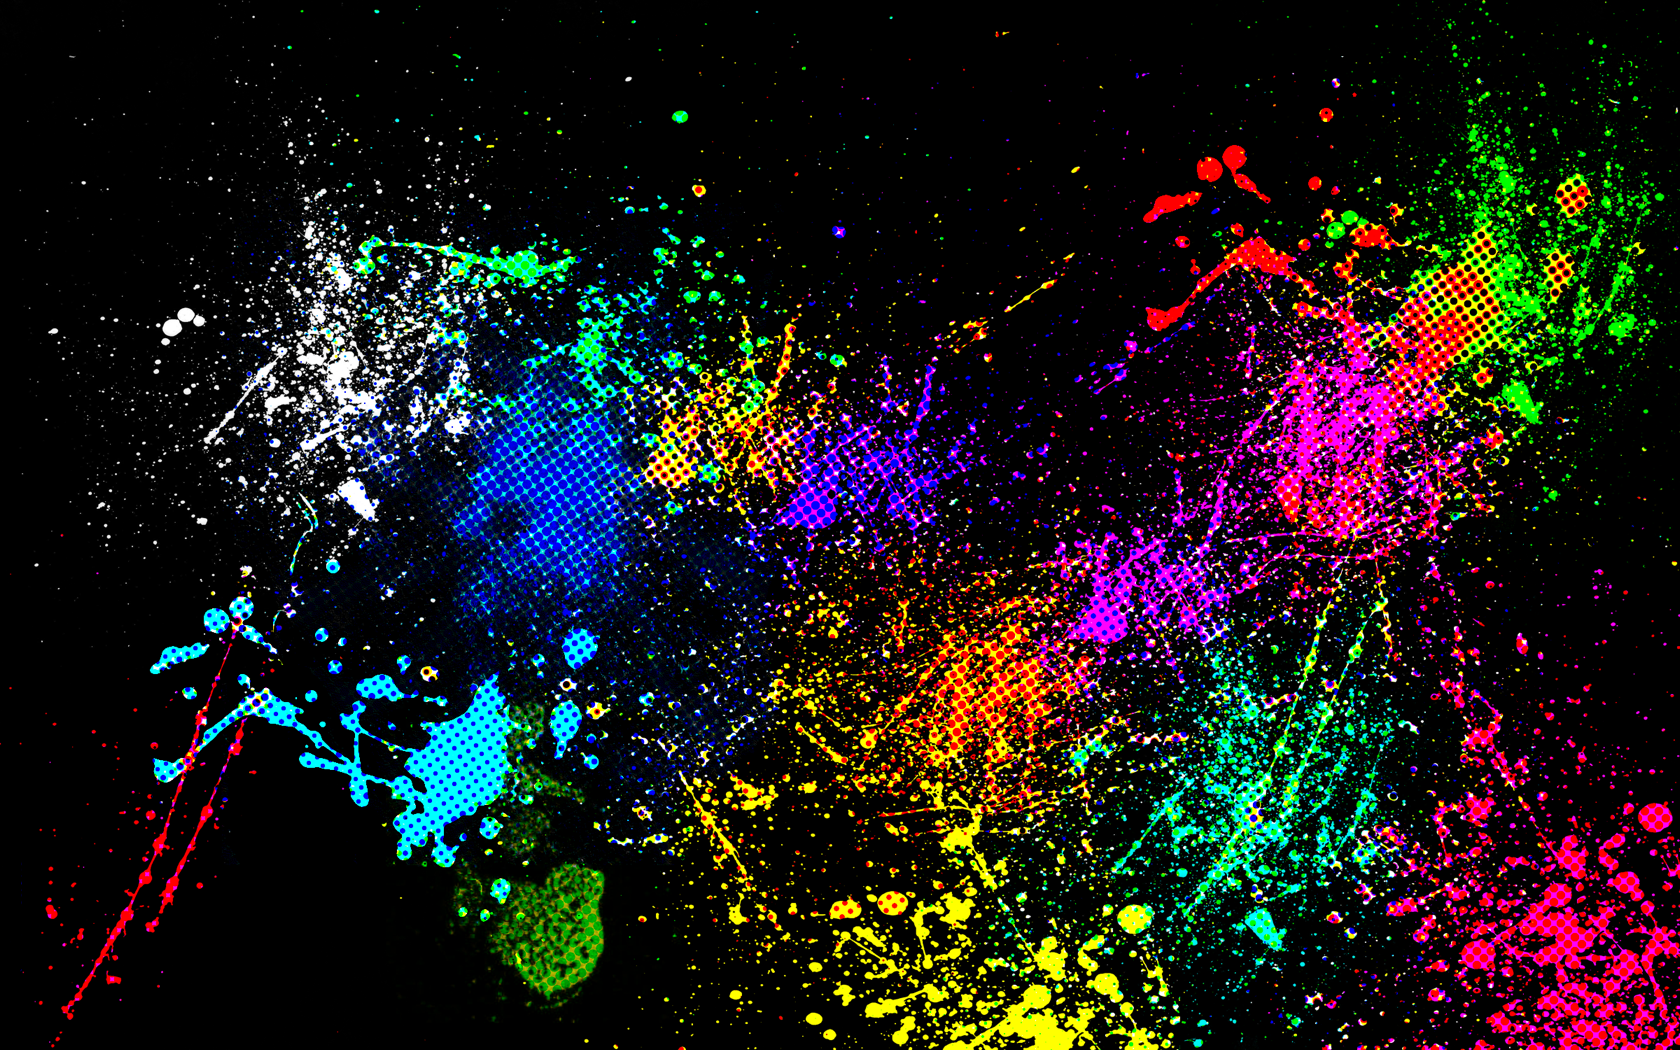 Color Splash Wall Art : splatter wallpaper 32887 33641 hd wallpapers from www.tehroony.com size 1680 x 1050 png 1376kB